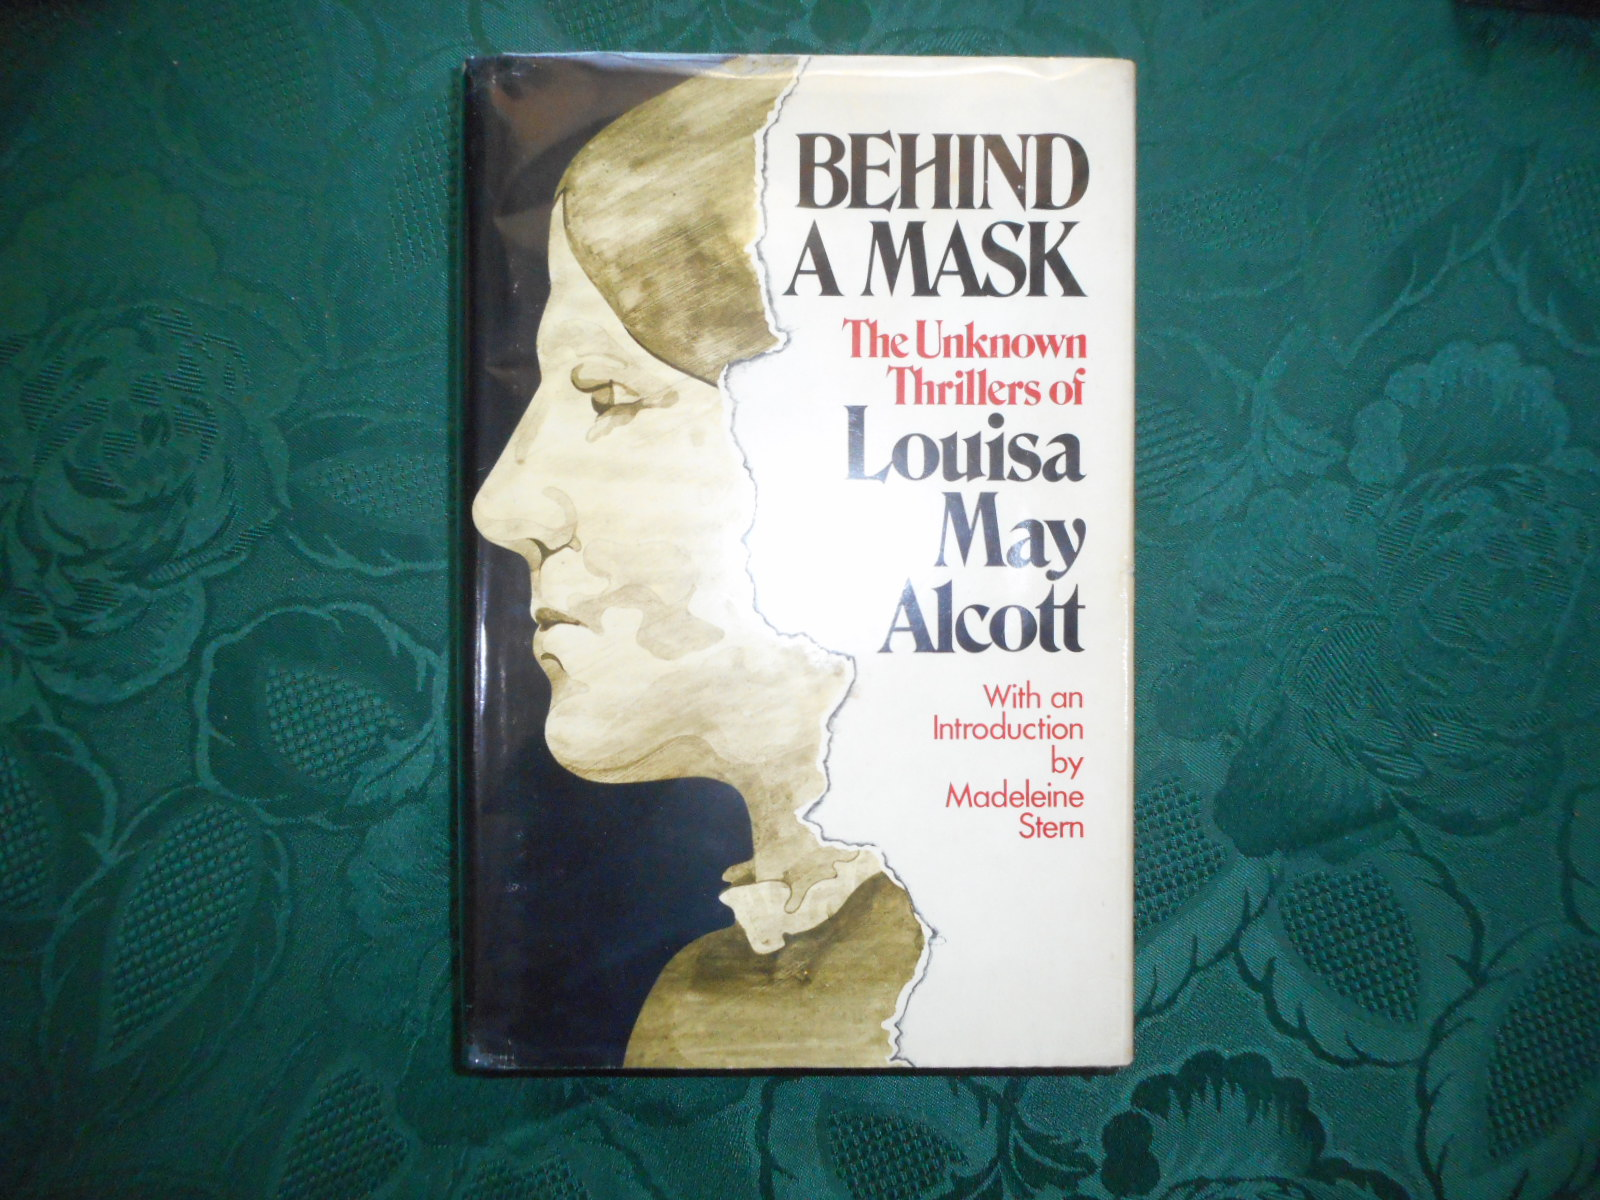 Image for BEHIND A MASK. The Unknown Thrillers of Louisa May Alcott